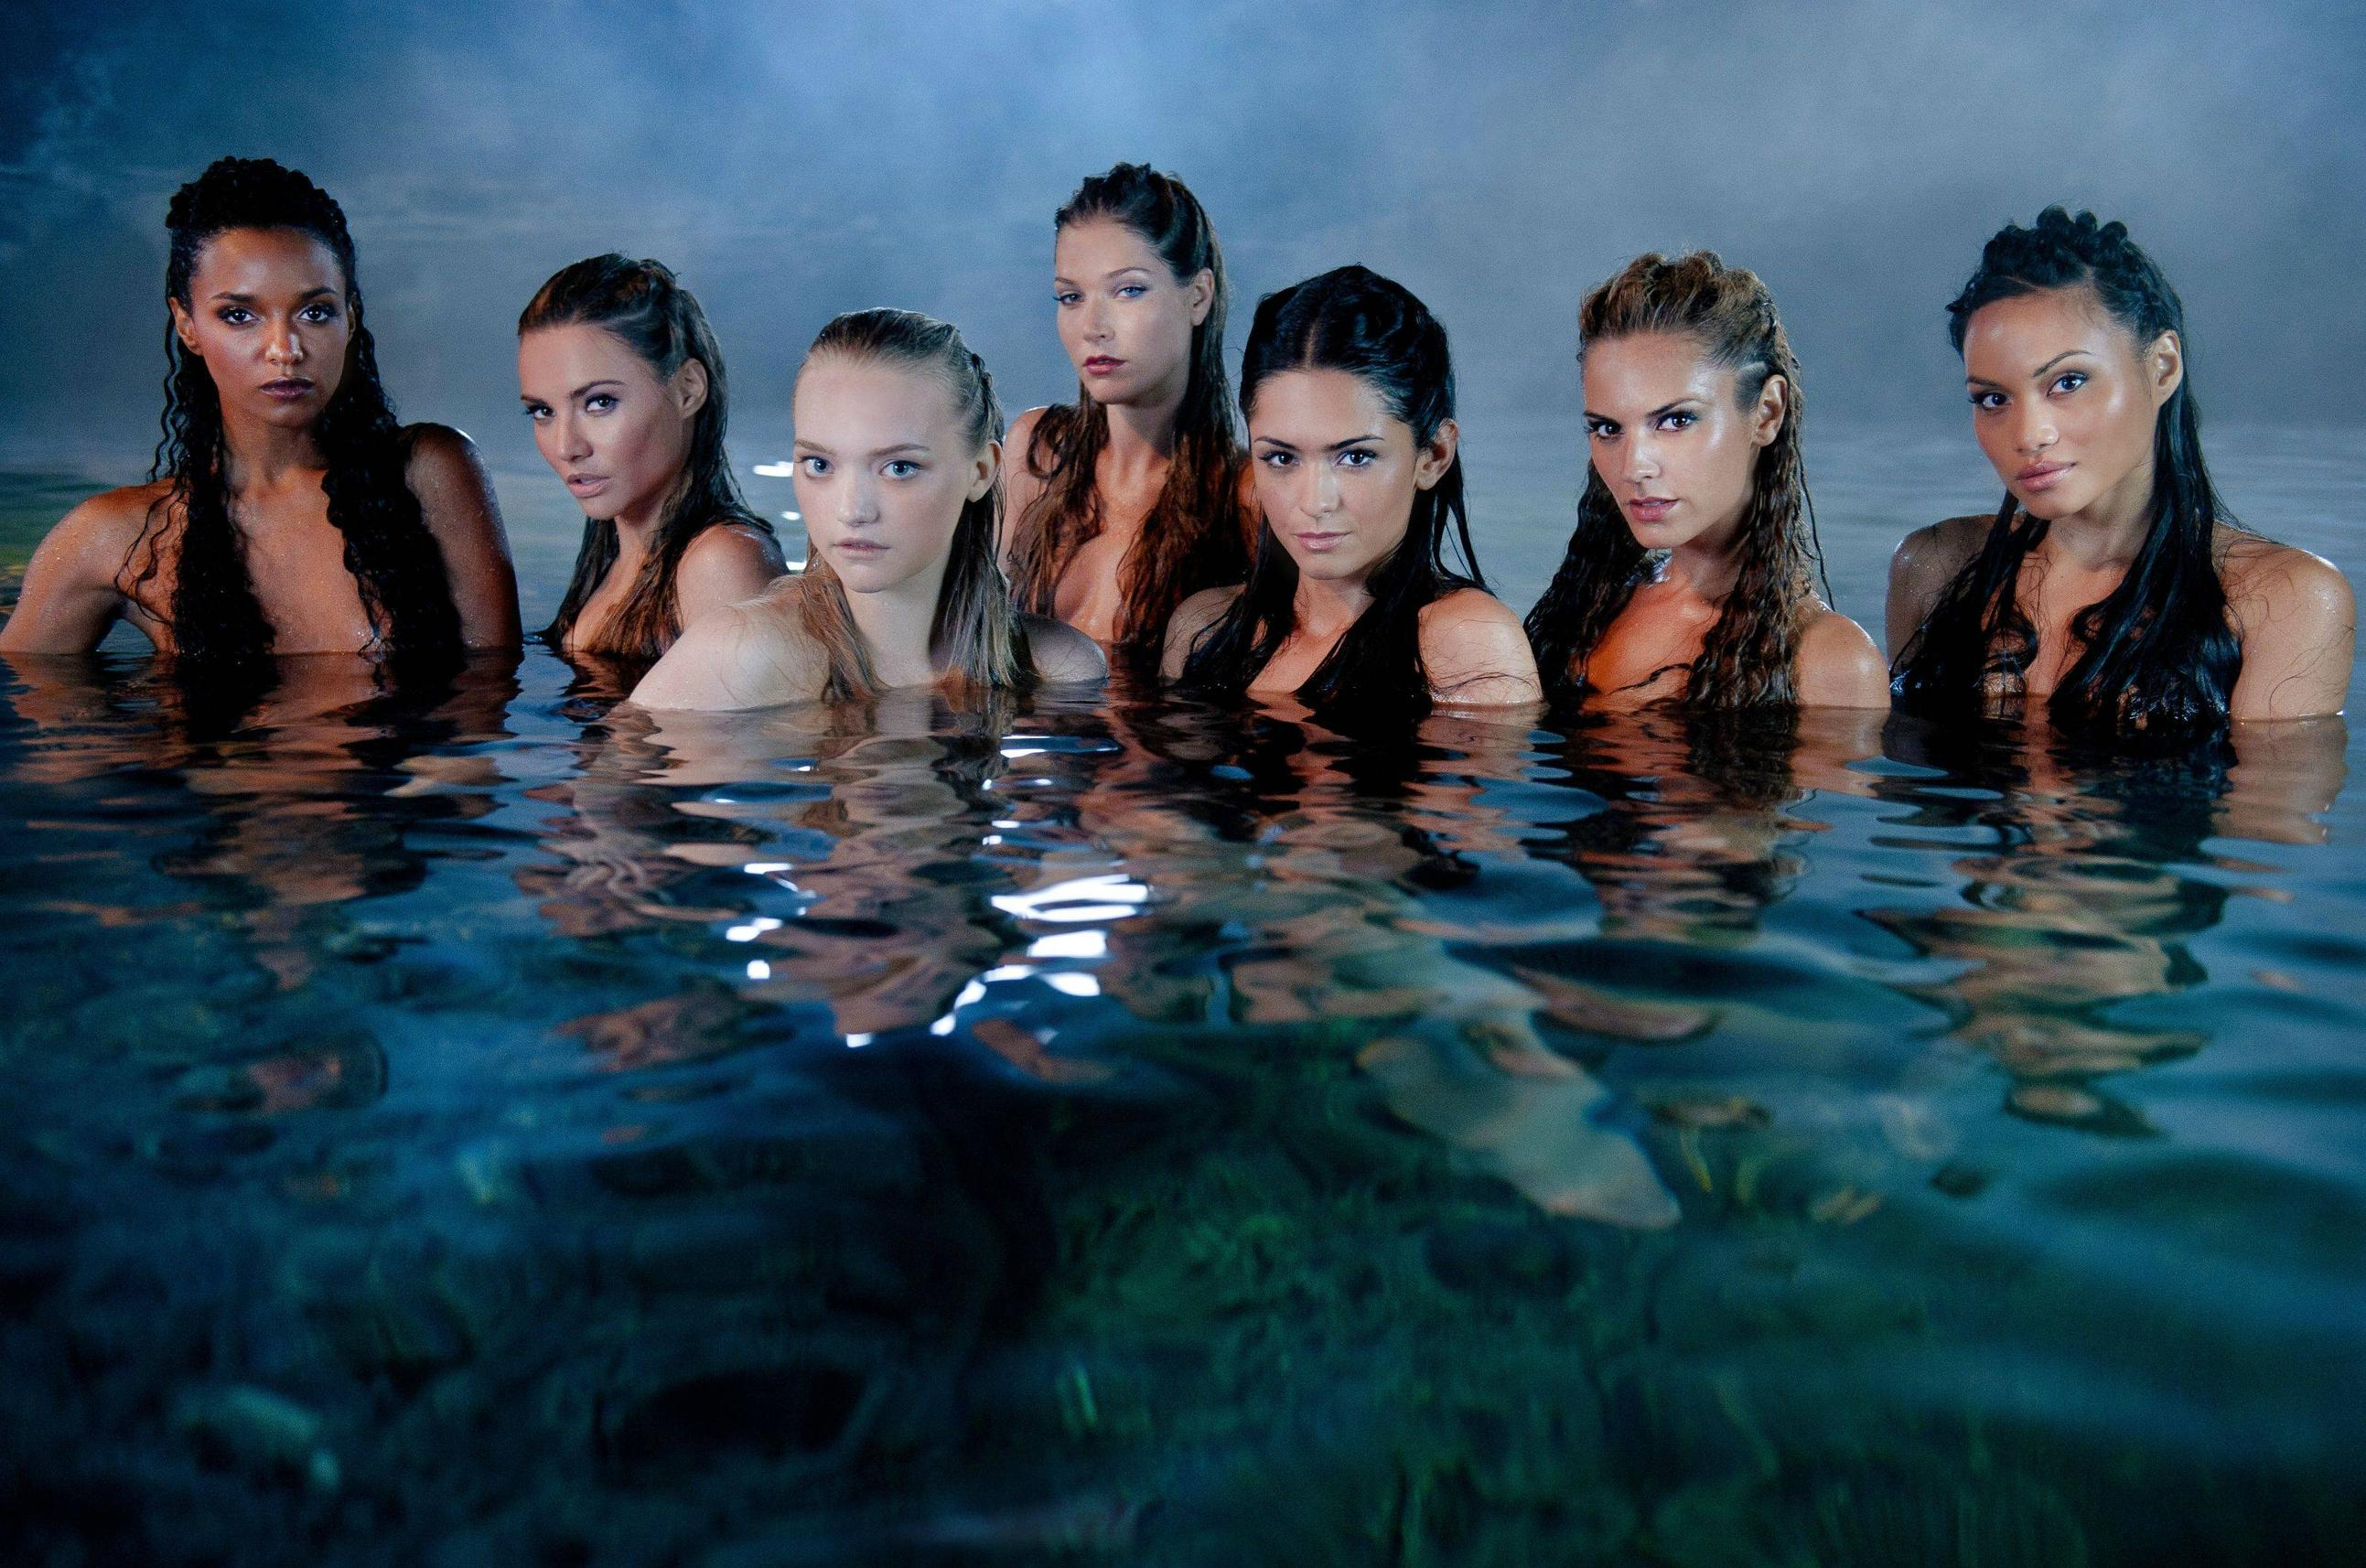 A lot of horny girls went for a night skinny dip